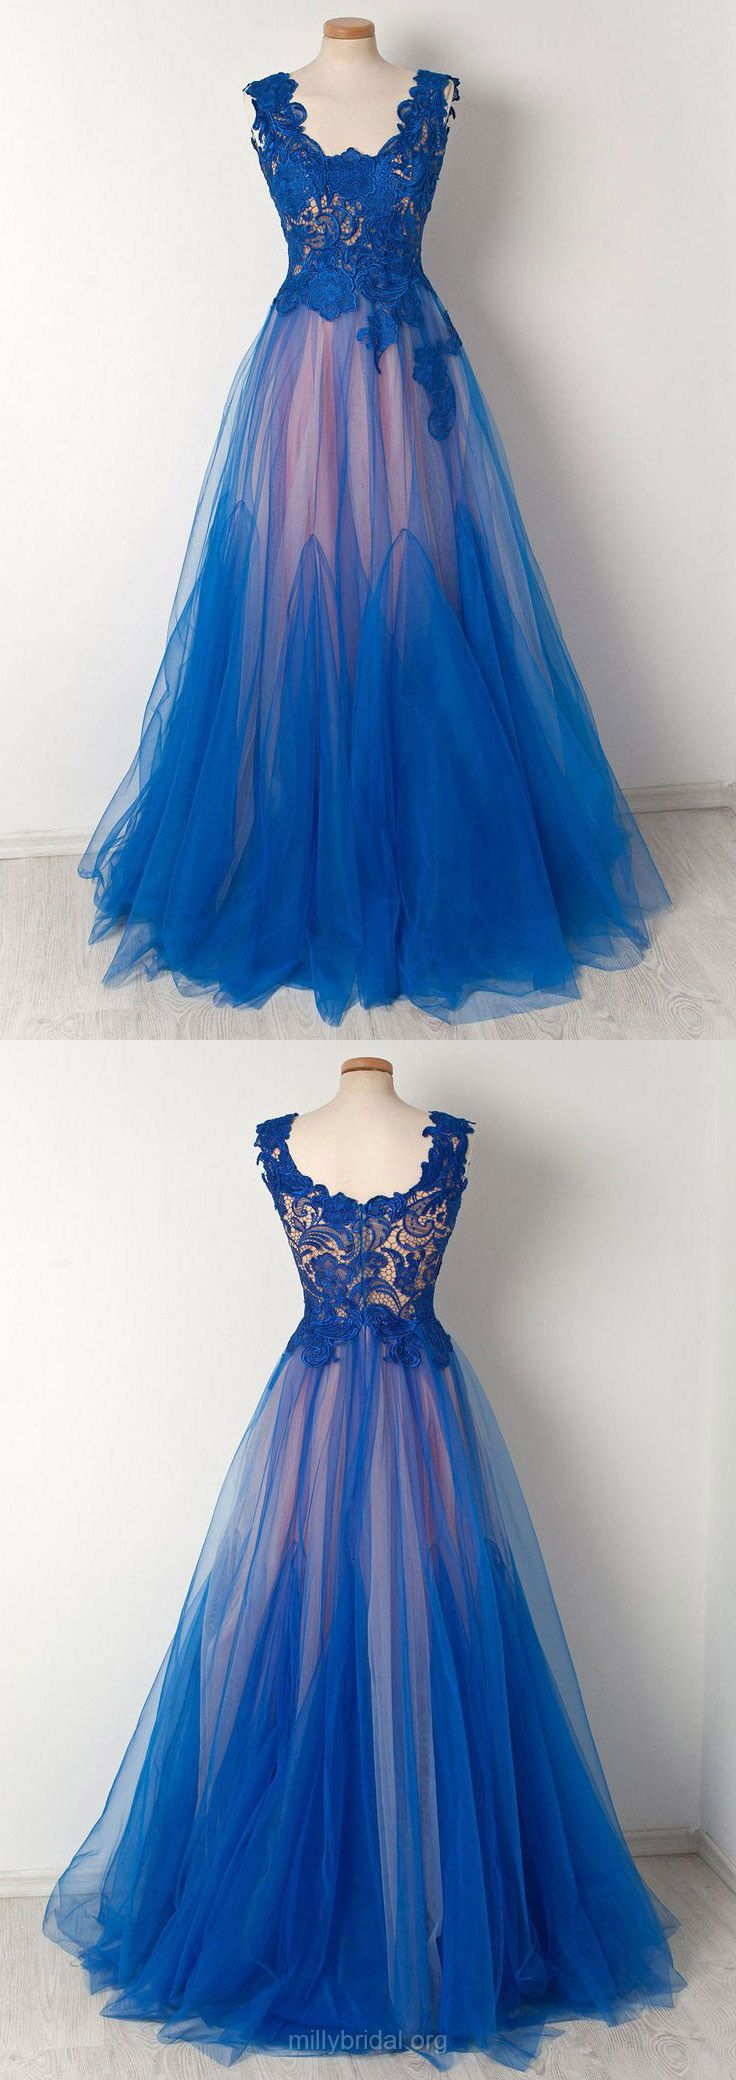 Lace Prom Dresses,Long Prom Dresses,Blue Prom Dresses 2018,Princess Prom Dresses For Teens,Scalloped Neck Prom Dresses Tulle Modest #lacedresses